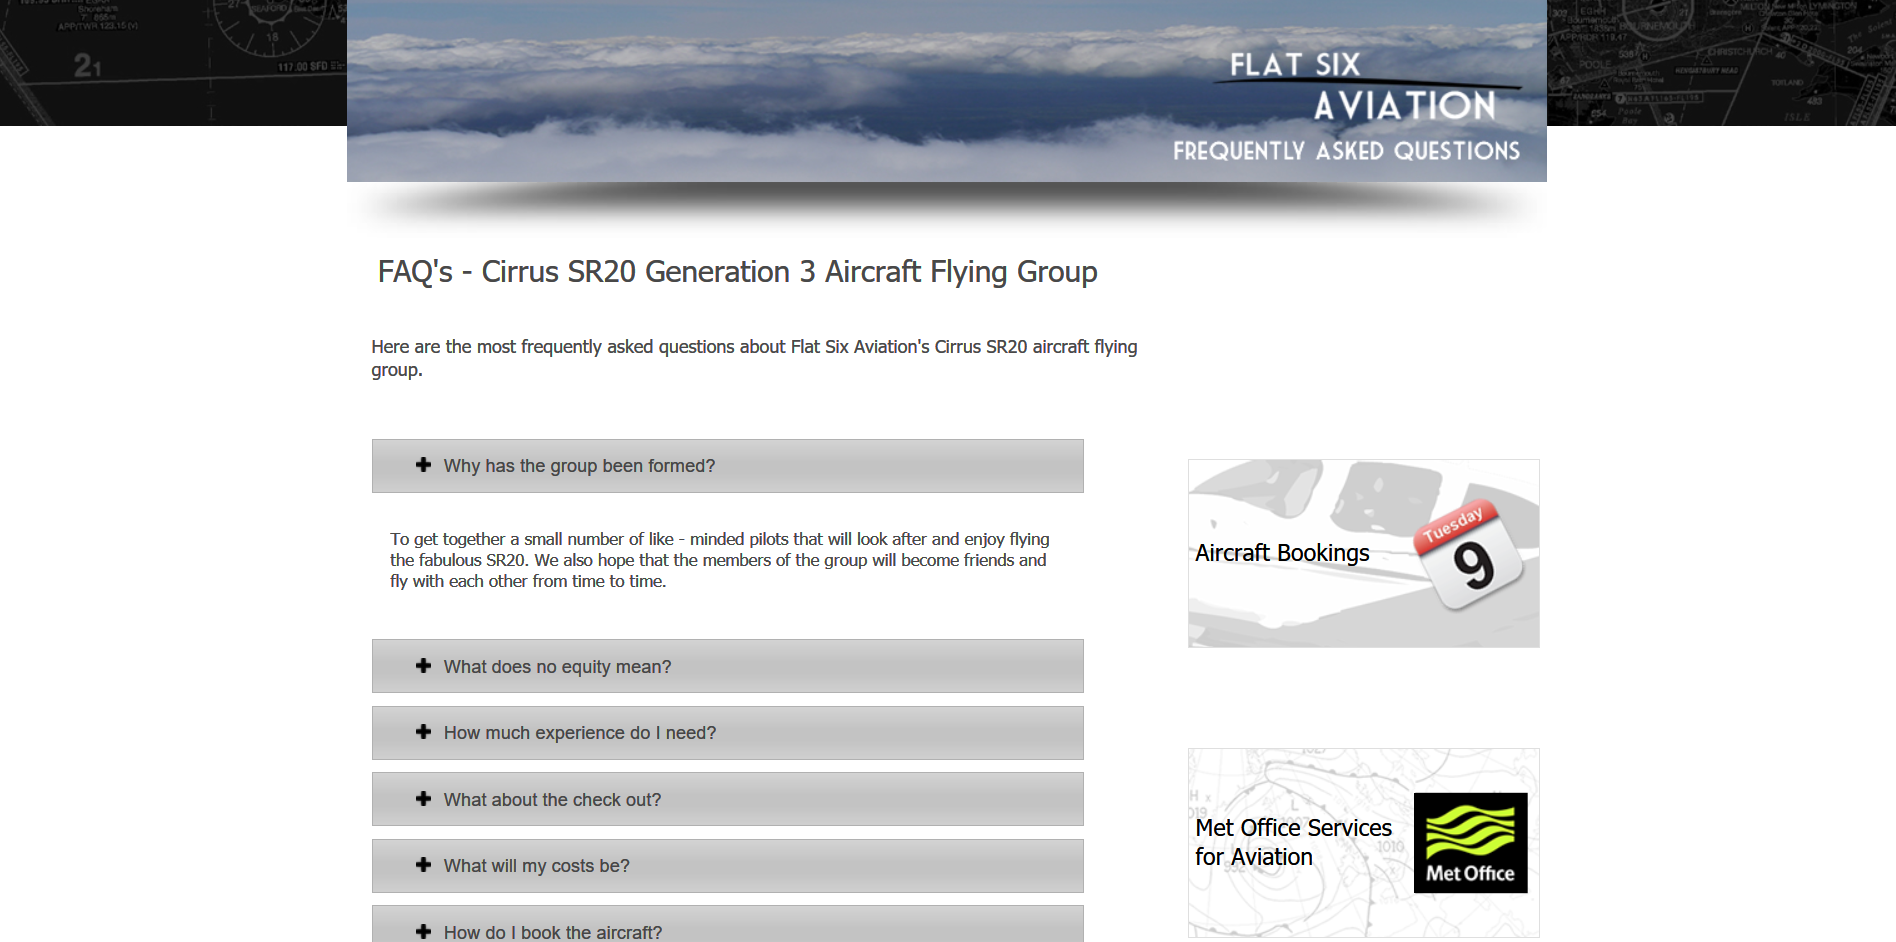 Sample of the design work on the Flat Six Aviation website